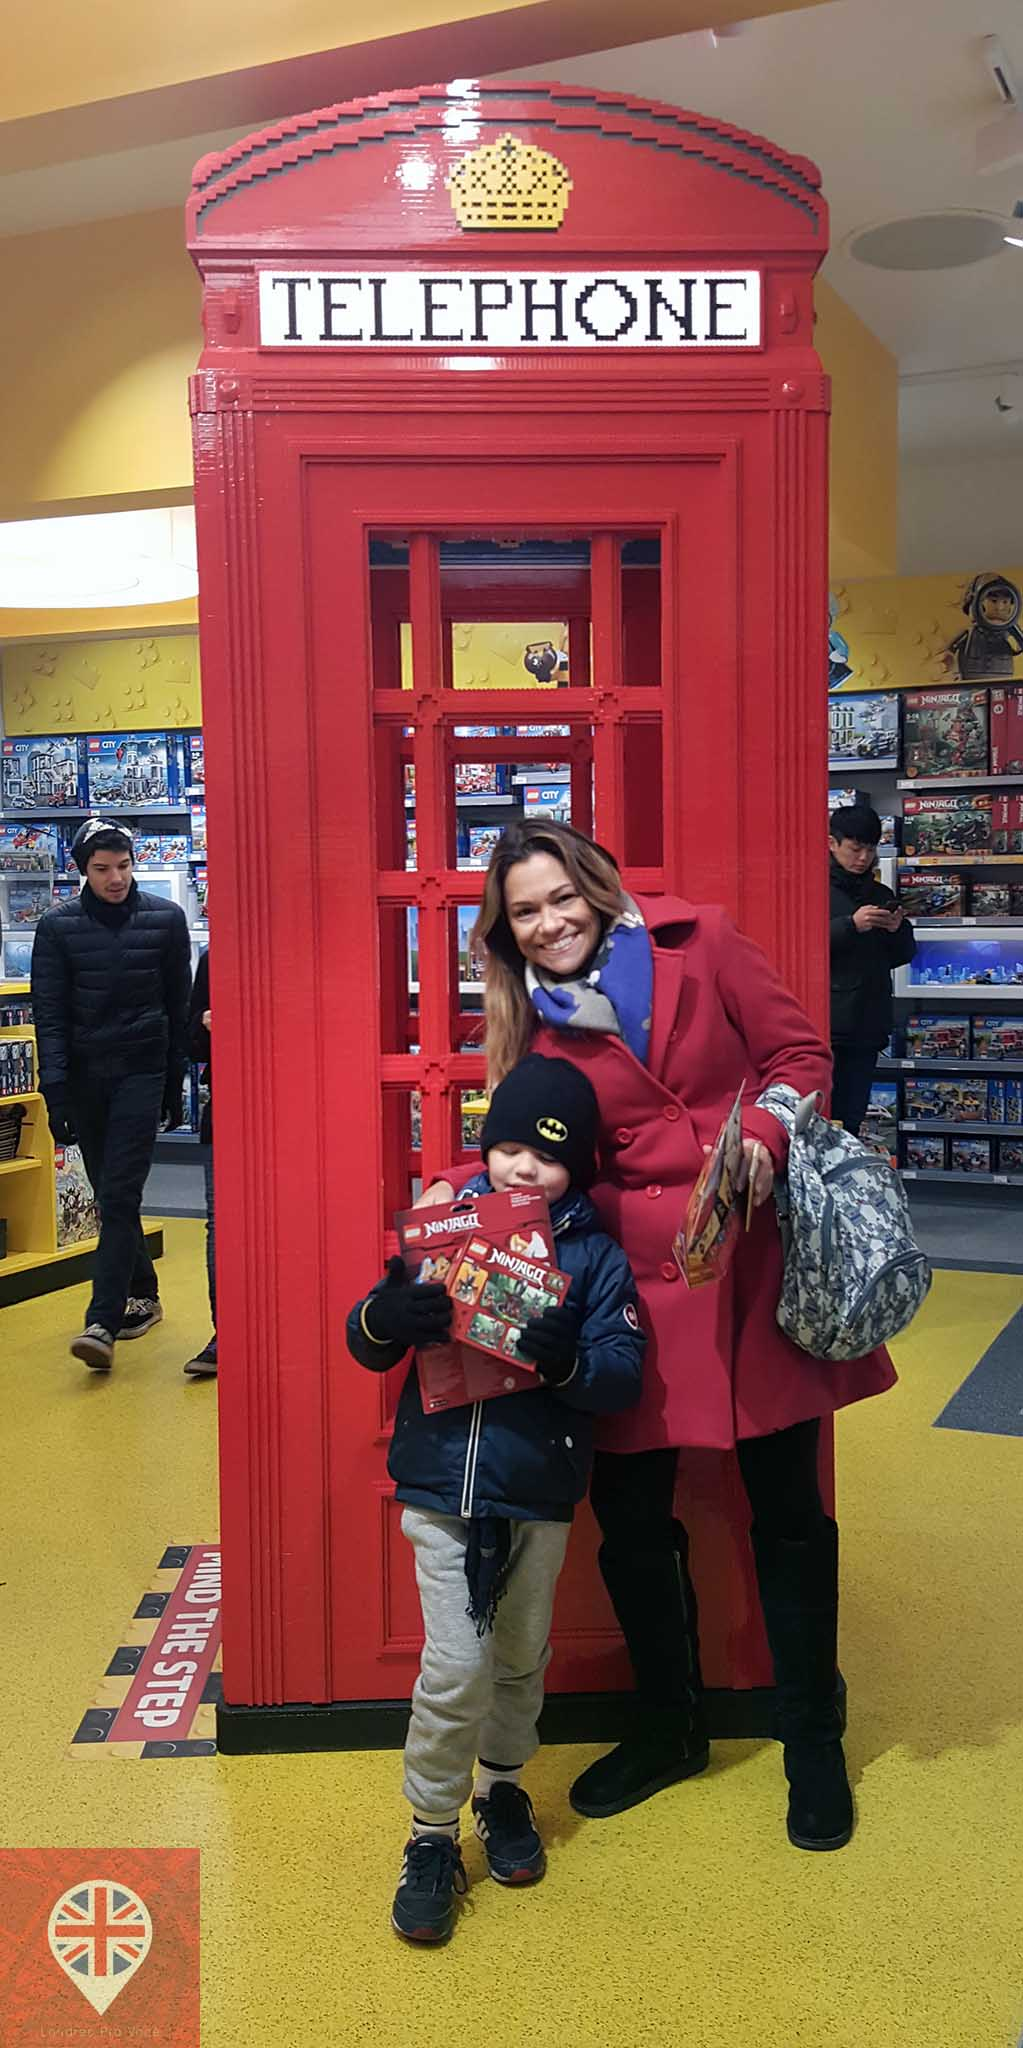 Lego store phone booth